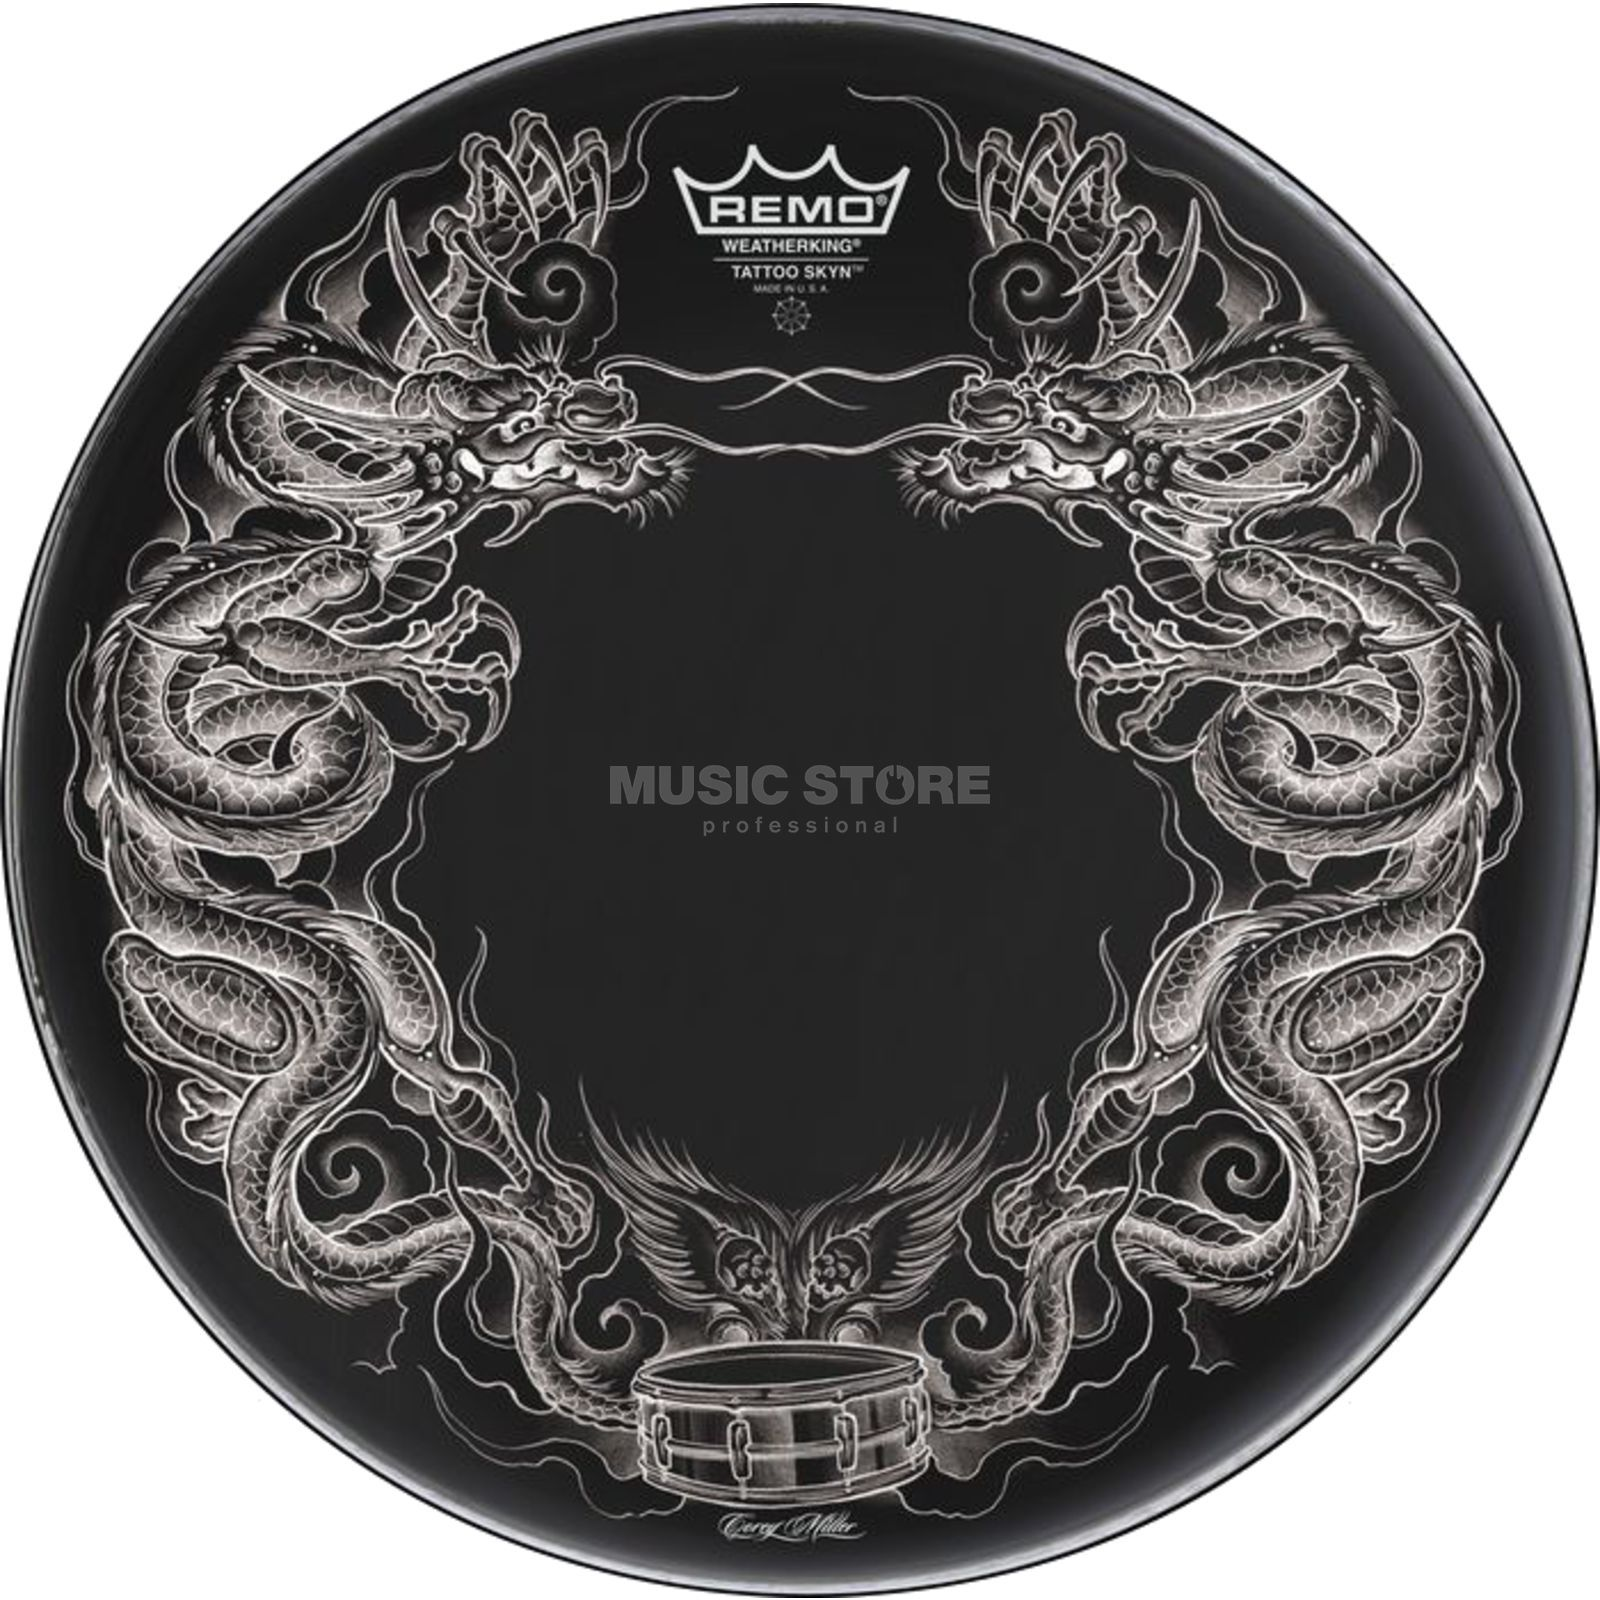 "Remo Tattoo Skyn 22"", Dragon Skyn on zwart Productafbeelding"